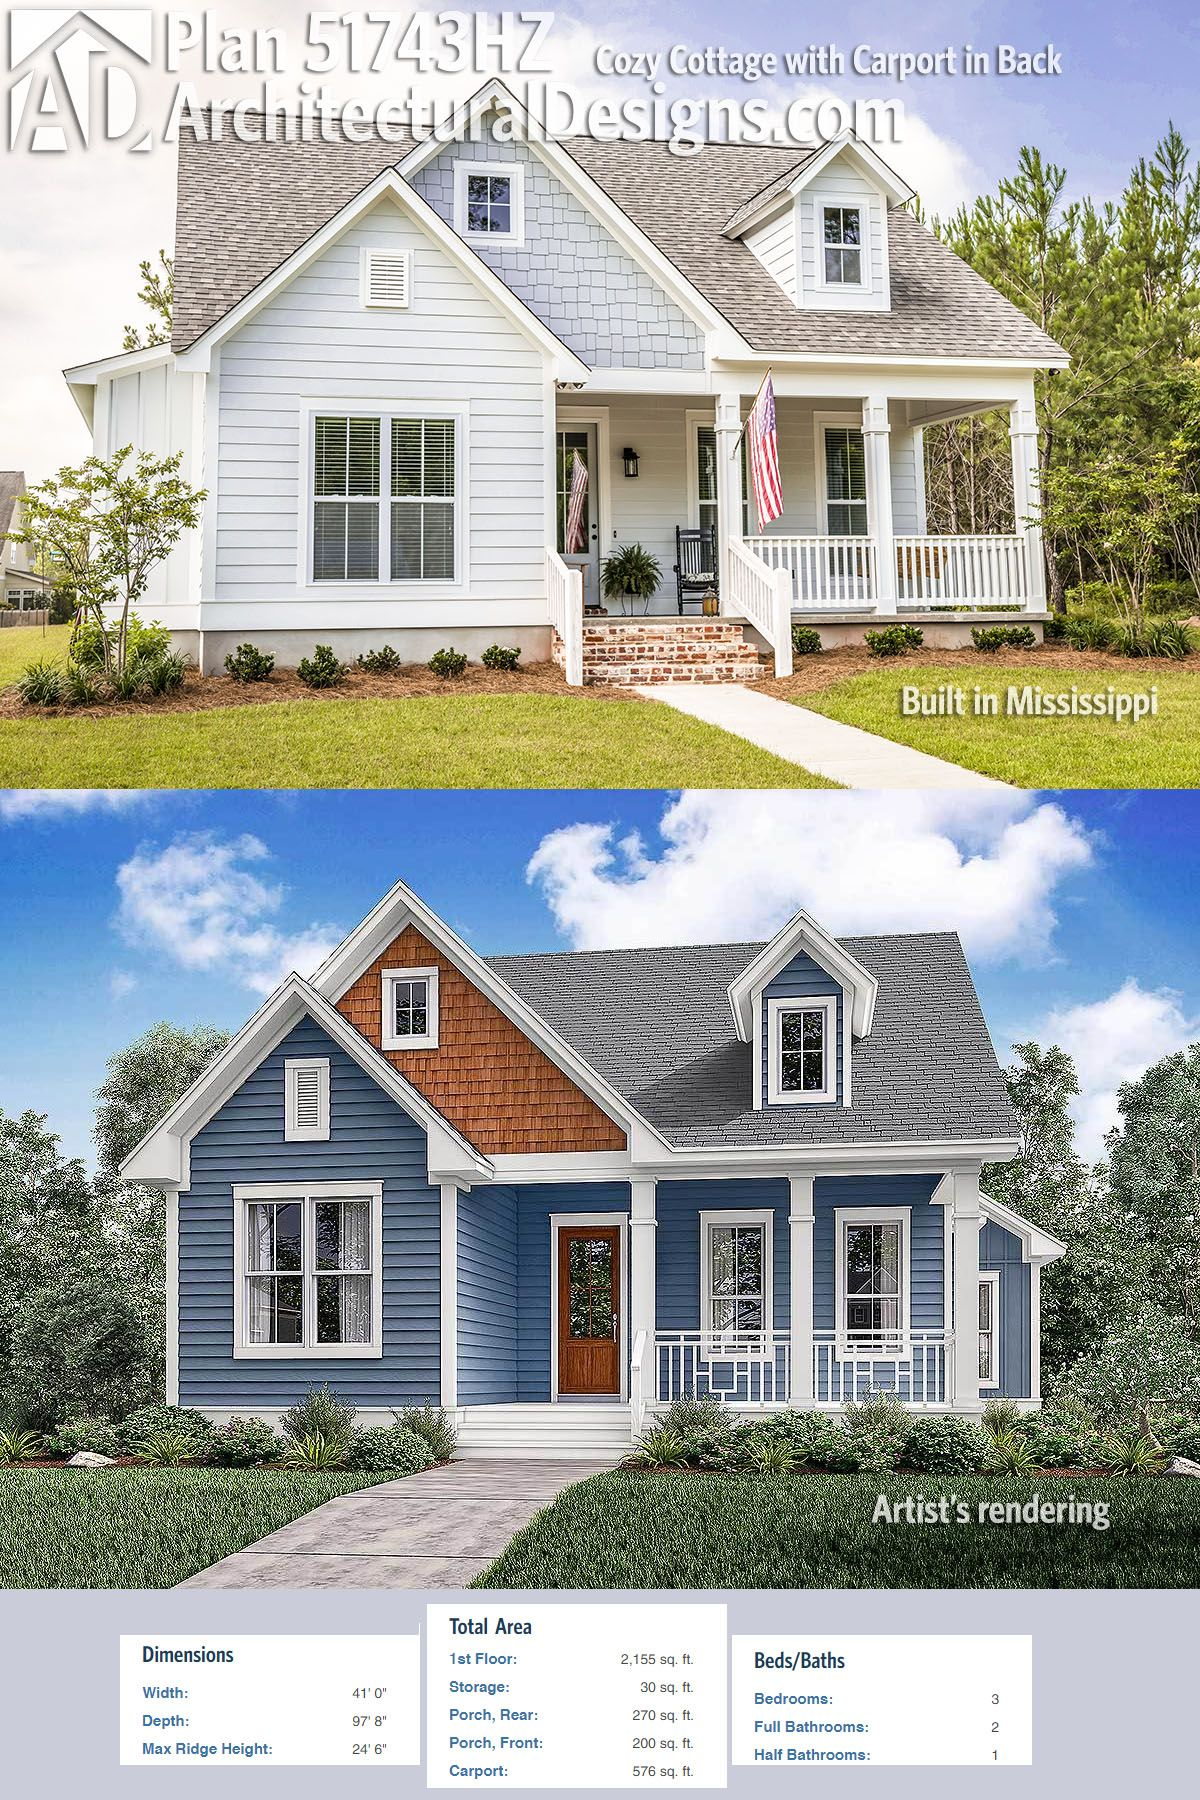 Cozy Cottage Style Cozy Home Ideas Homes Exterior Design Modern Homes Lawn Chimney Cottage House Designs Small Cottage Homes Cottage House Plans